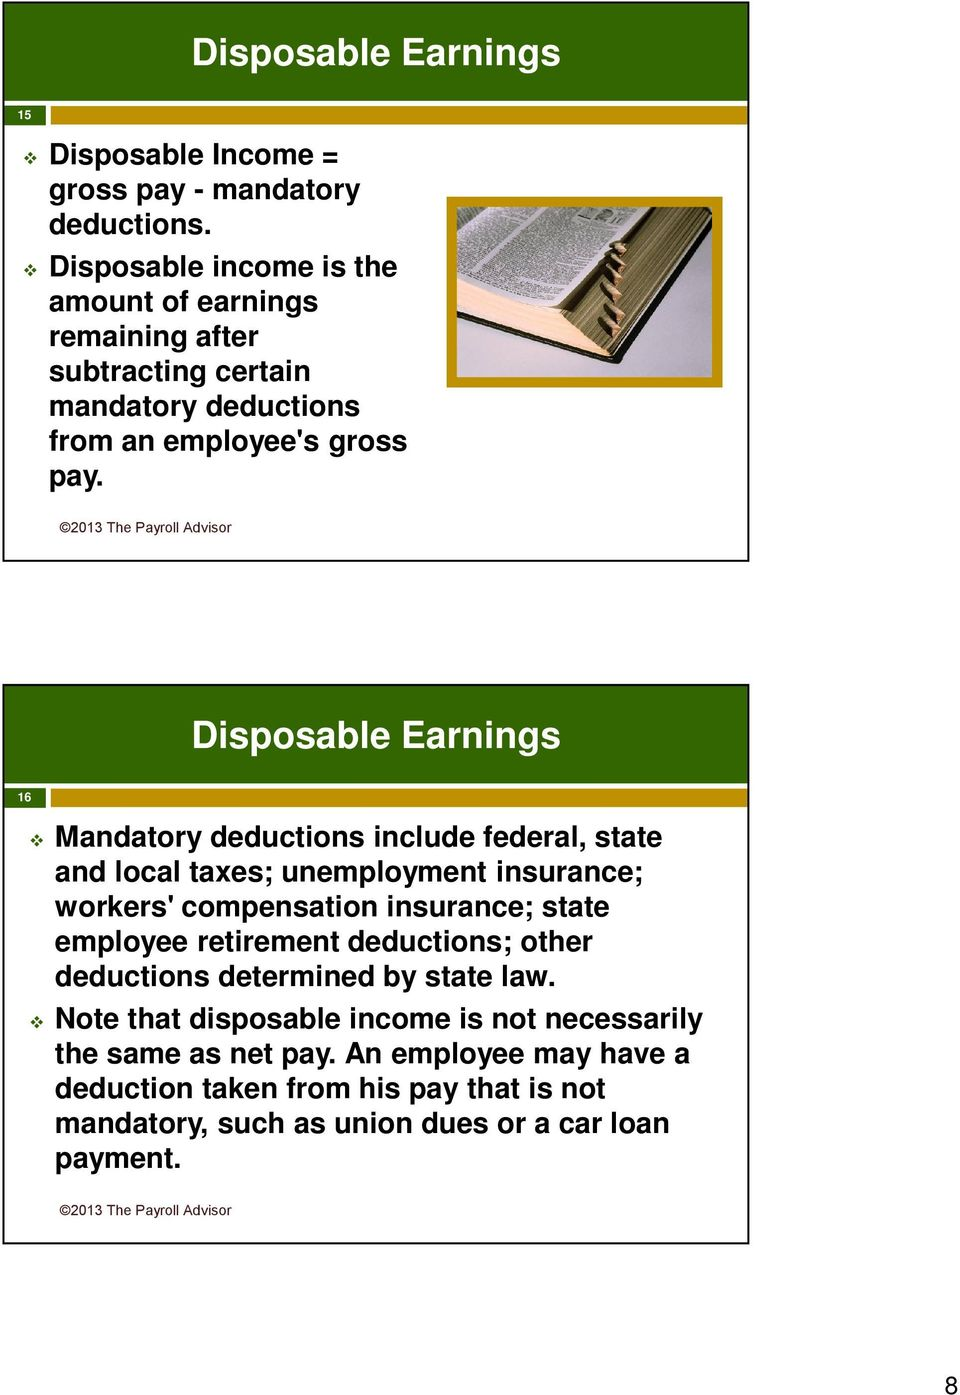 Disposable Earnings 16 Mandatory deductions include federal, state and local taxes; unemployment insurance; workers' compensation insurance; state